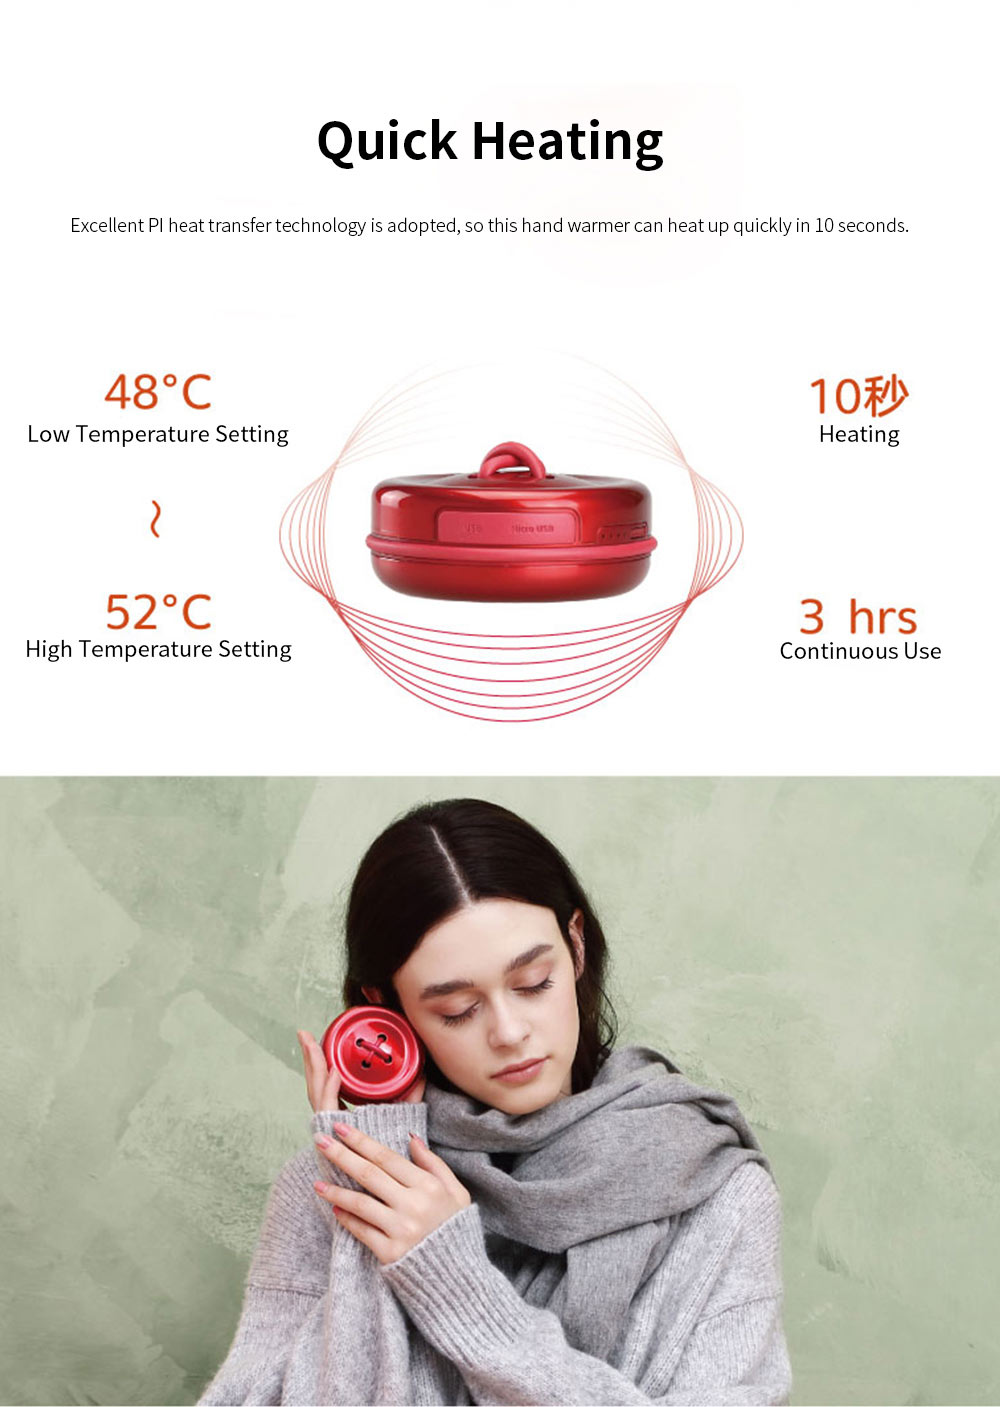 Portable Creative Cute Button Model Electronic Hand Warmer Power Bank Intelligent Temperature Control Quick Heating 3